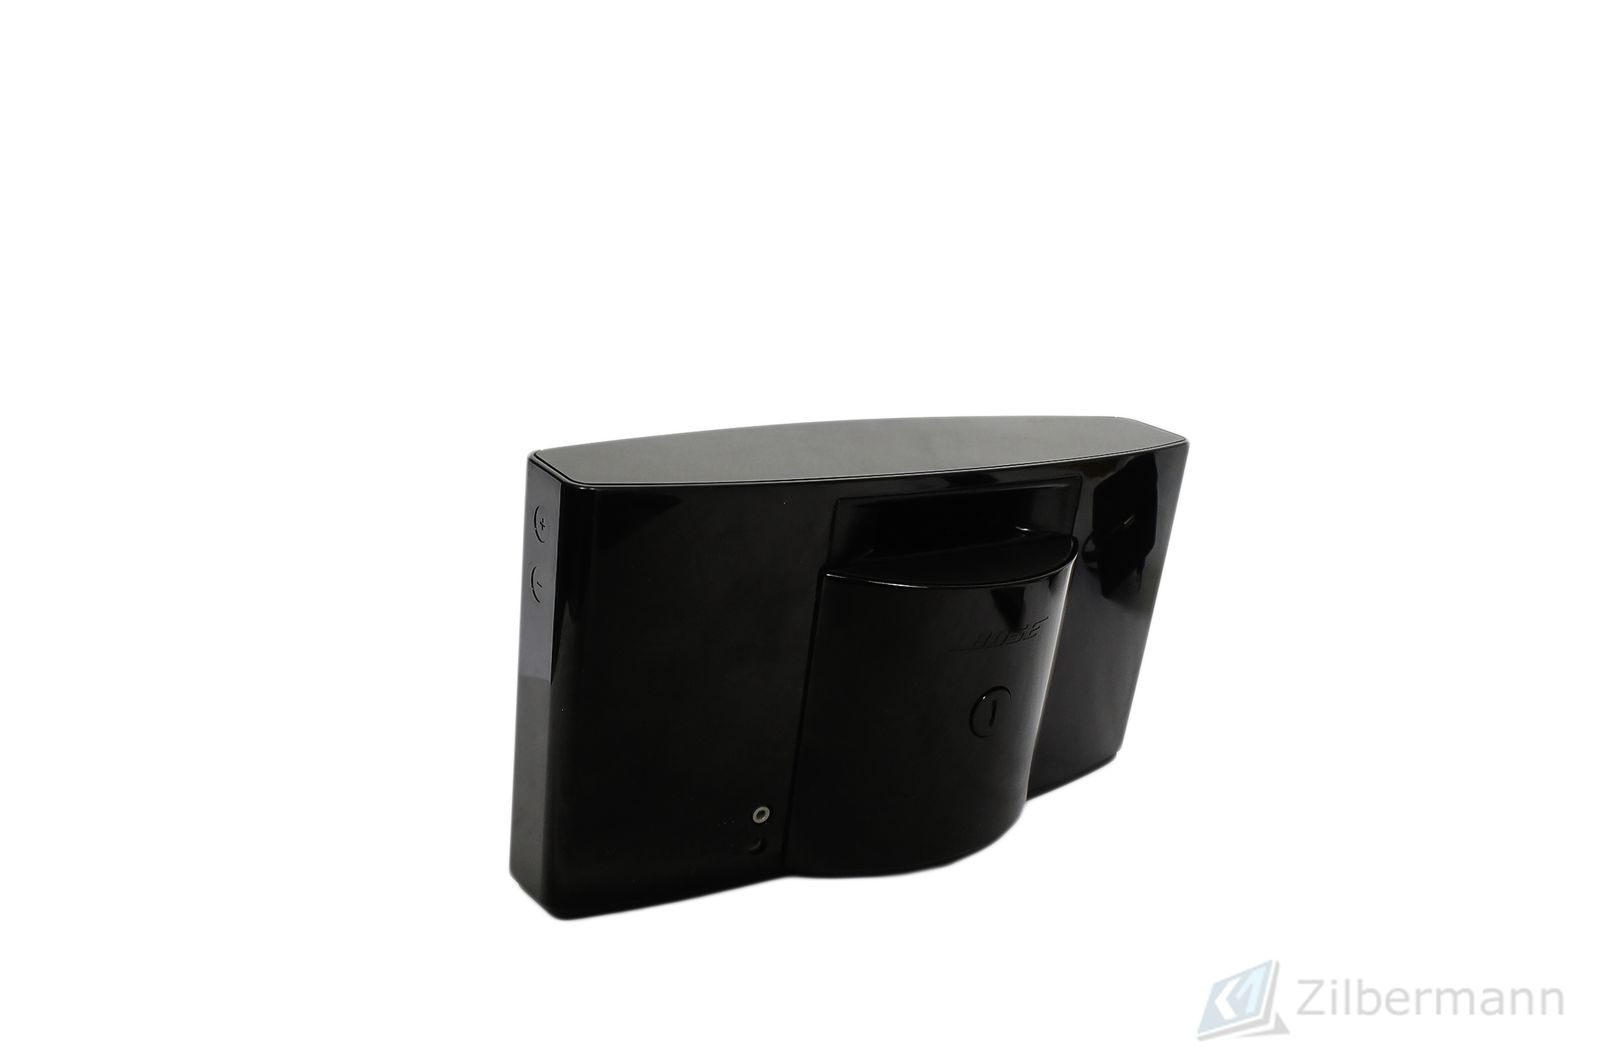 Bose_SoundDock_Portable_Digital_Music_System_04